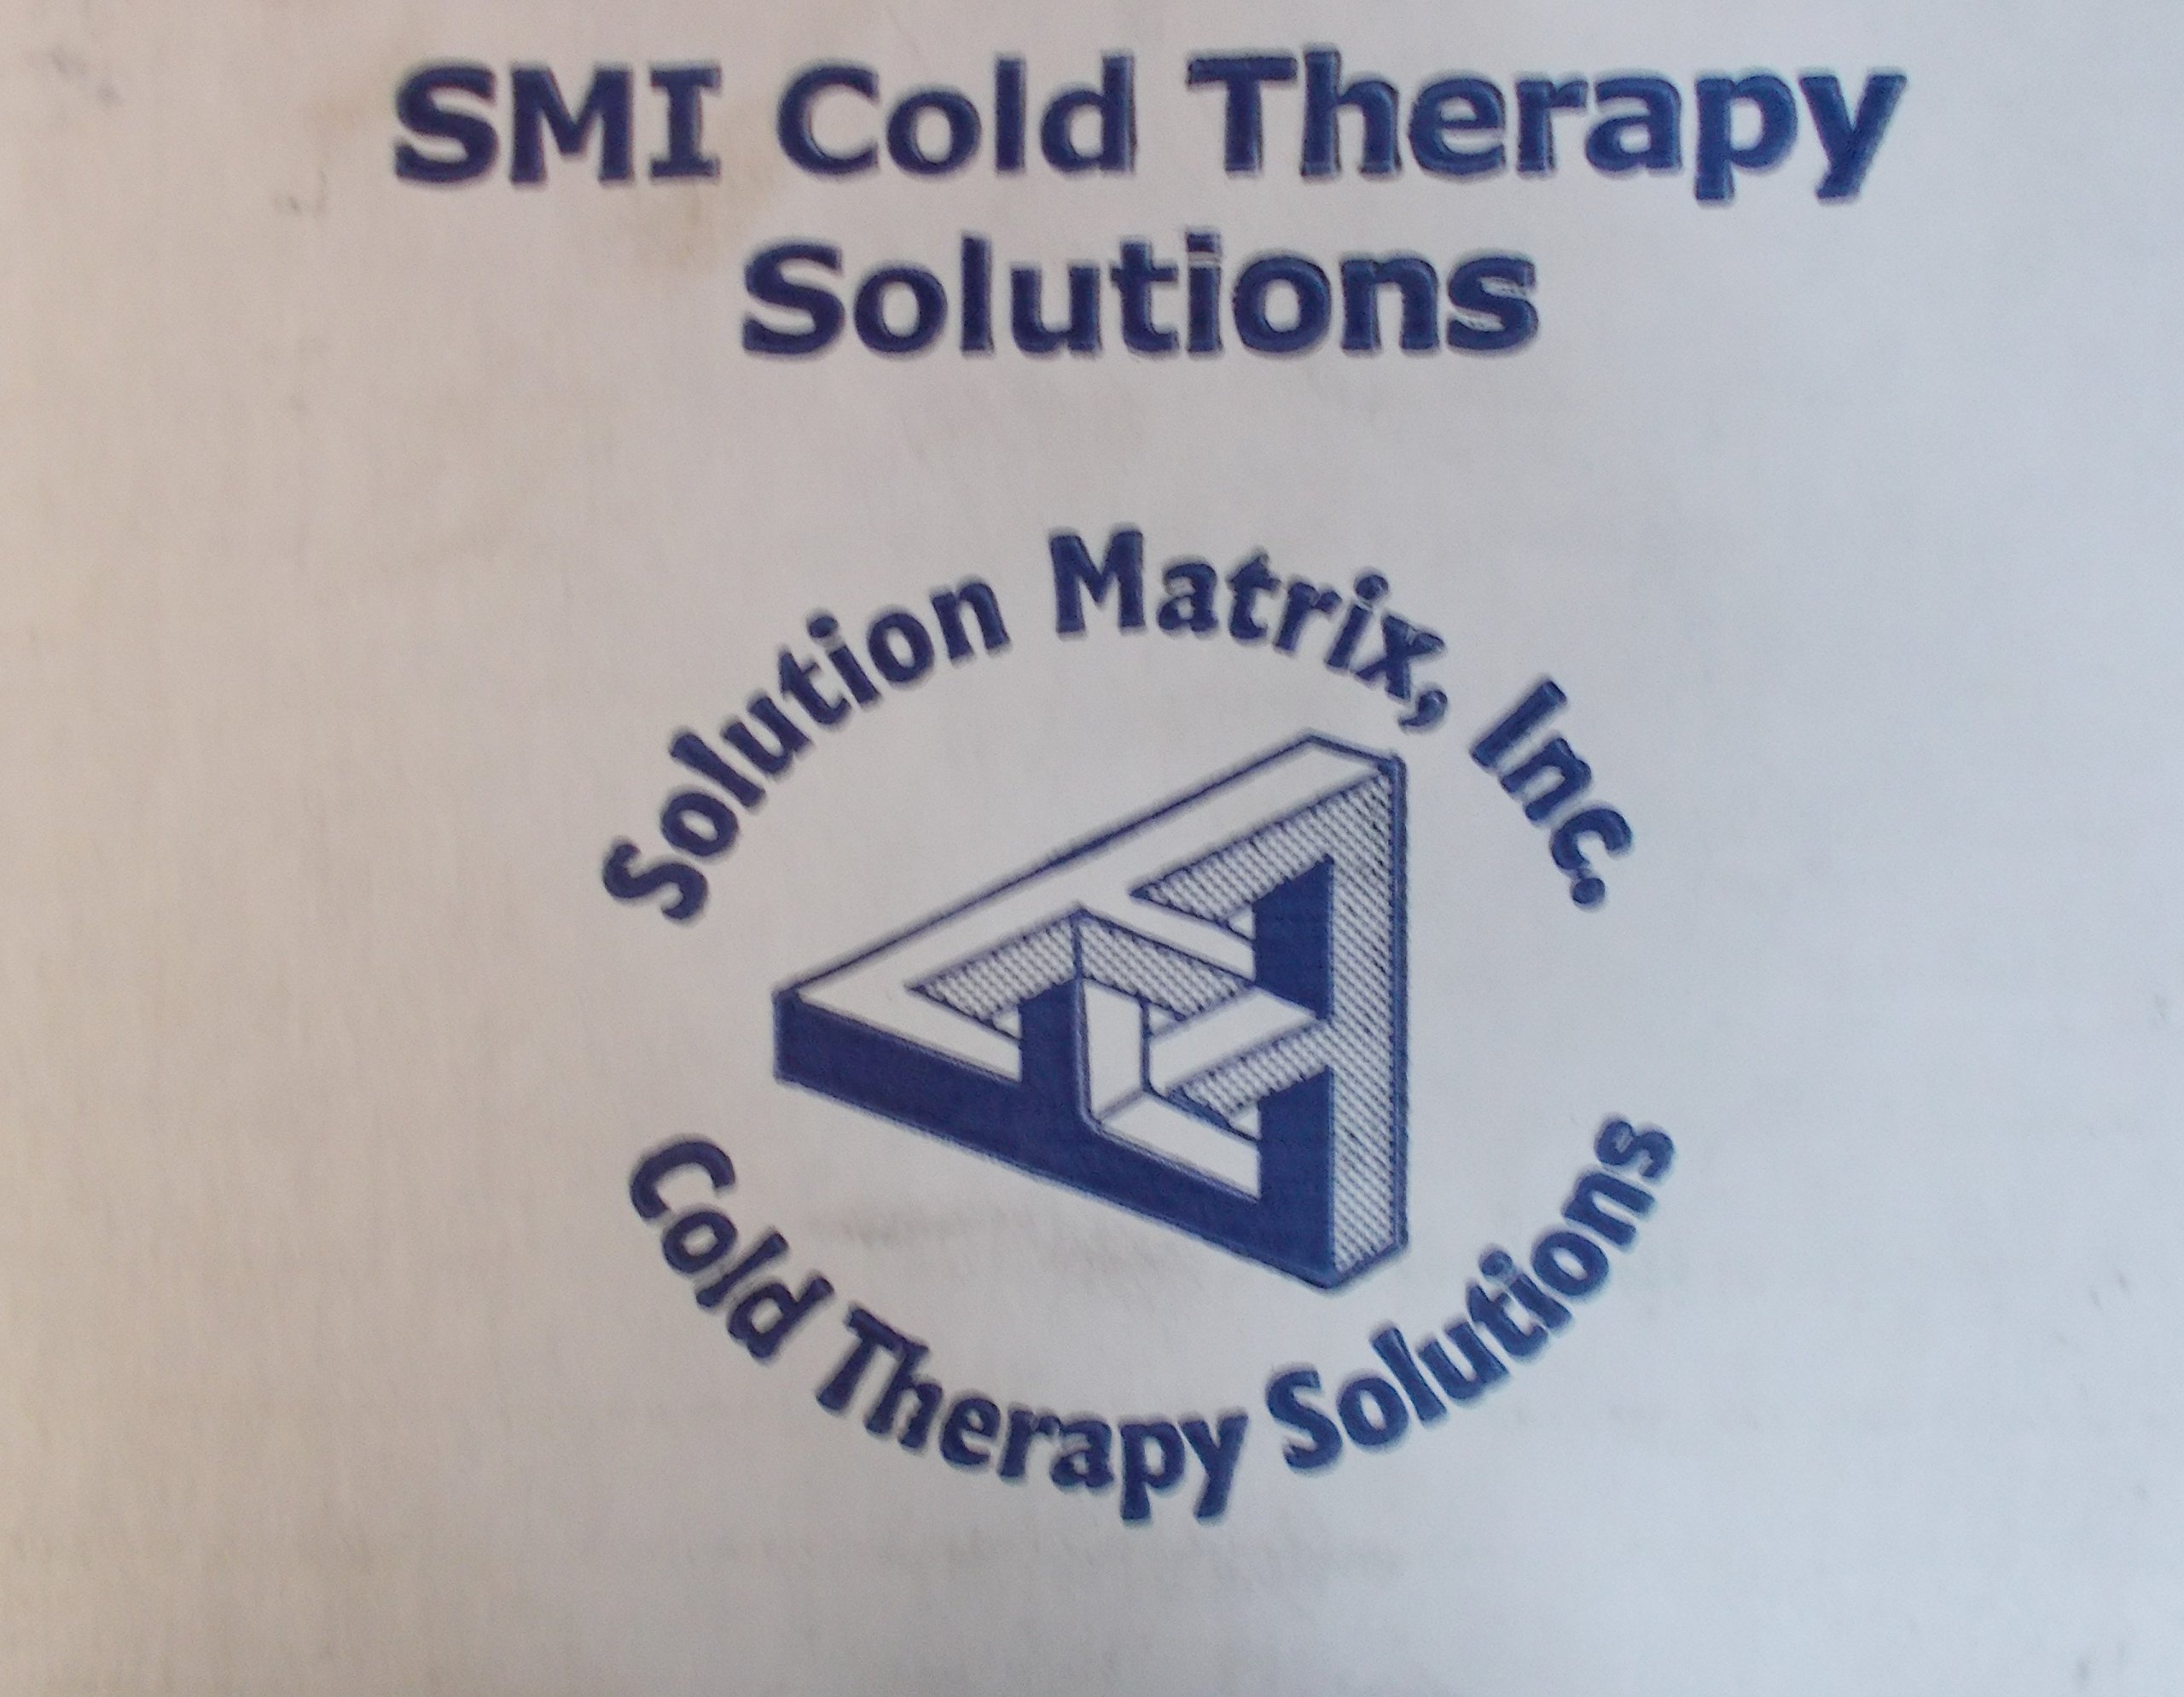 SMI Cold/Hot Therapy Bag 12/case